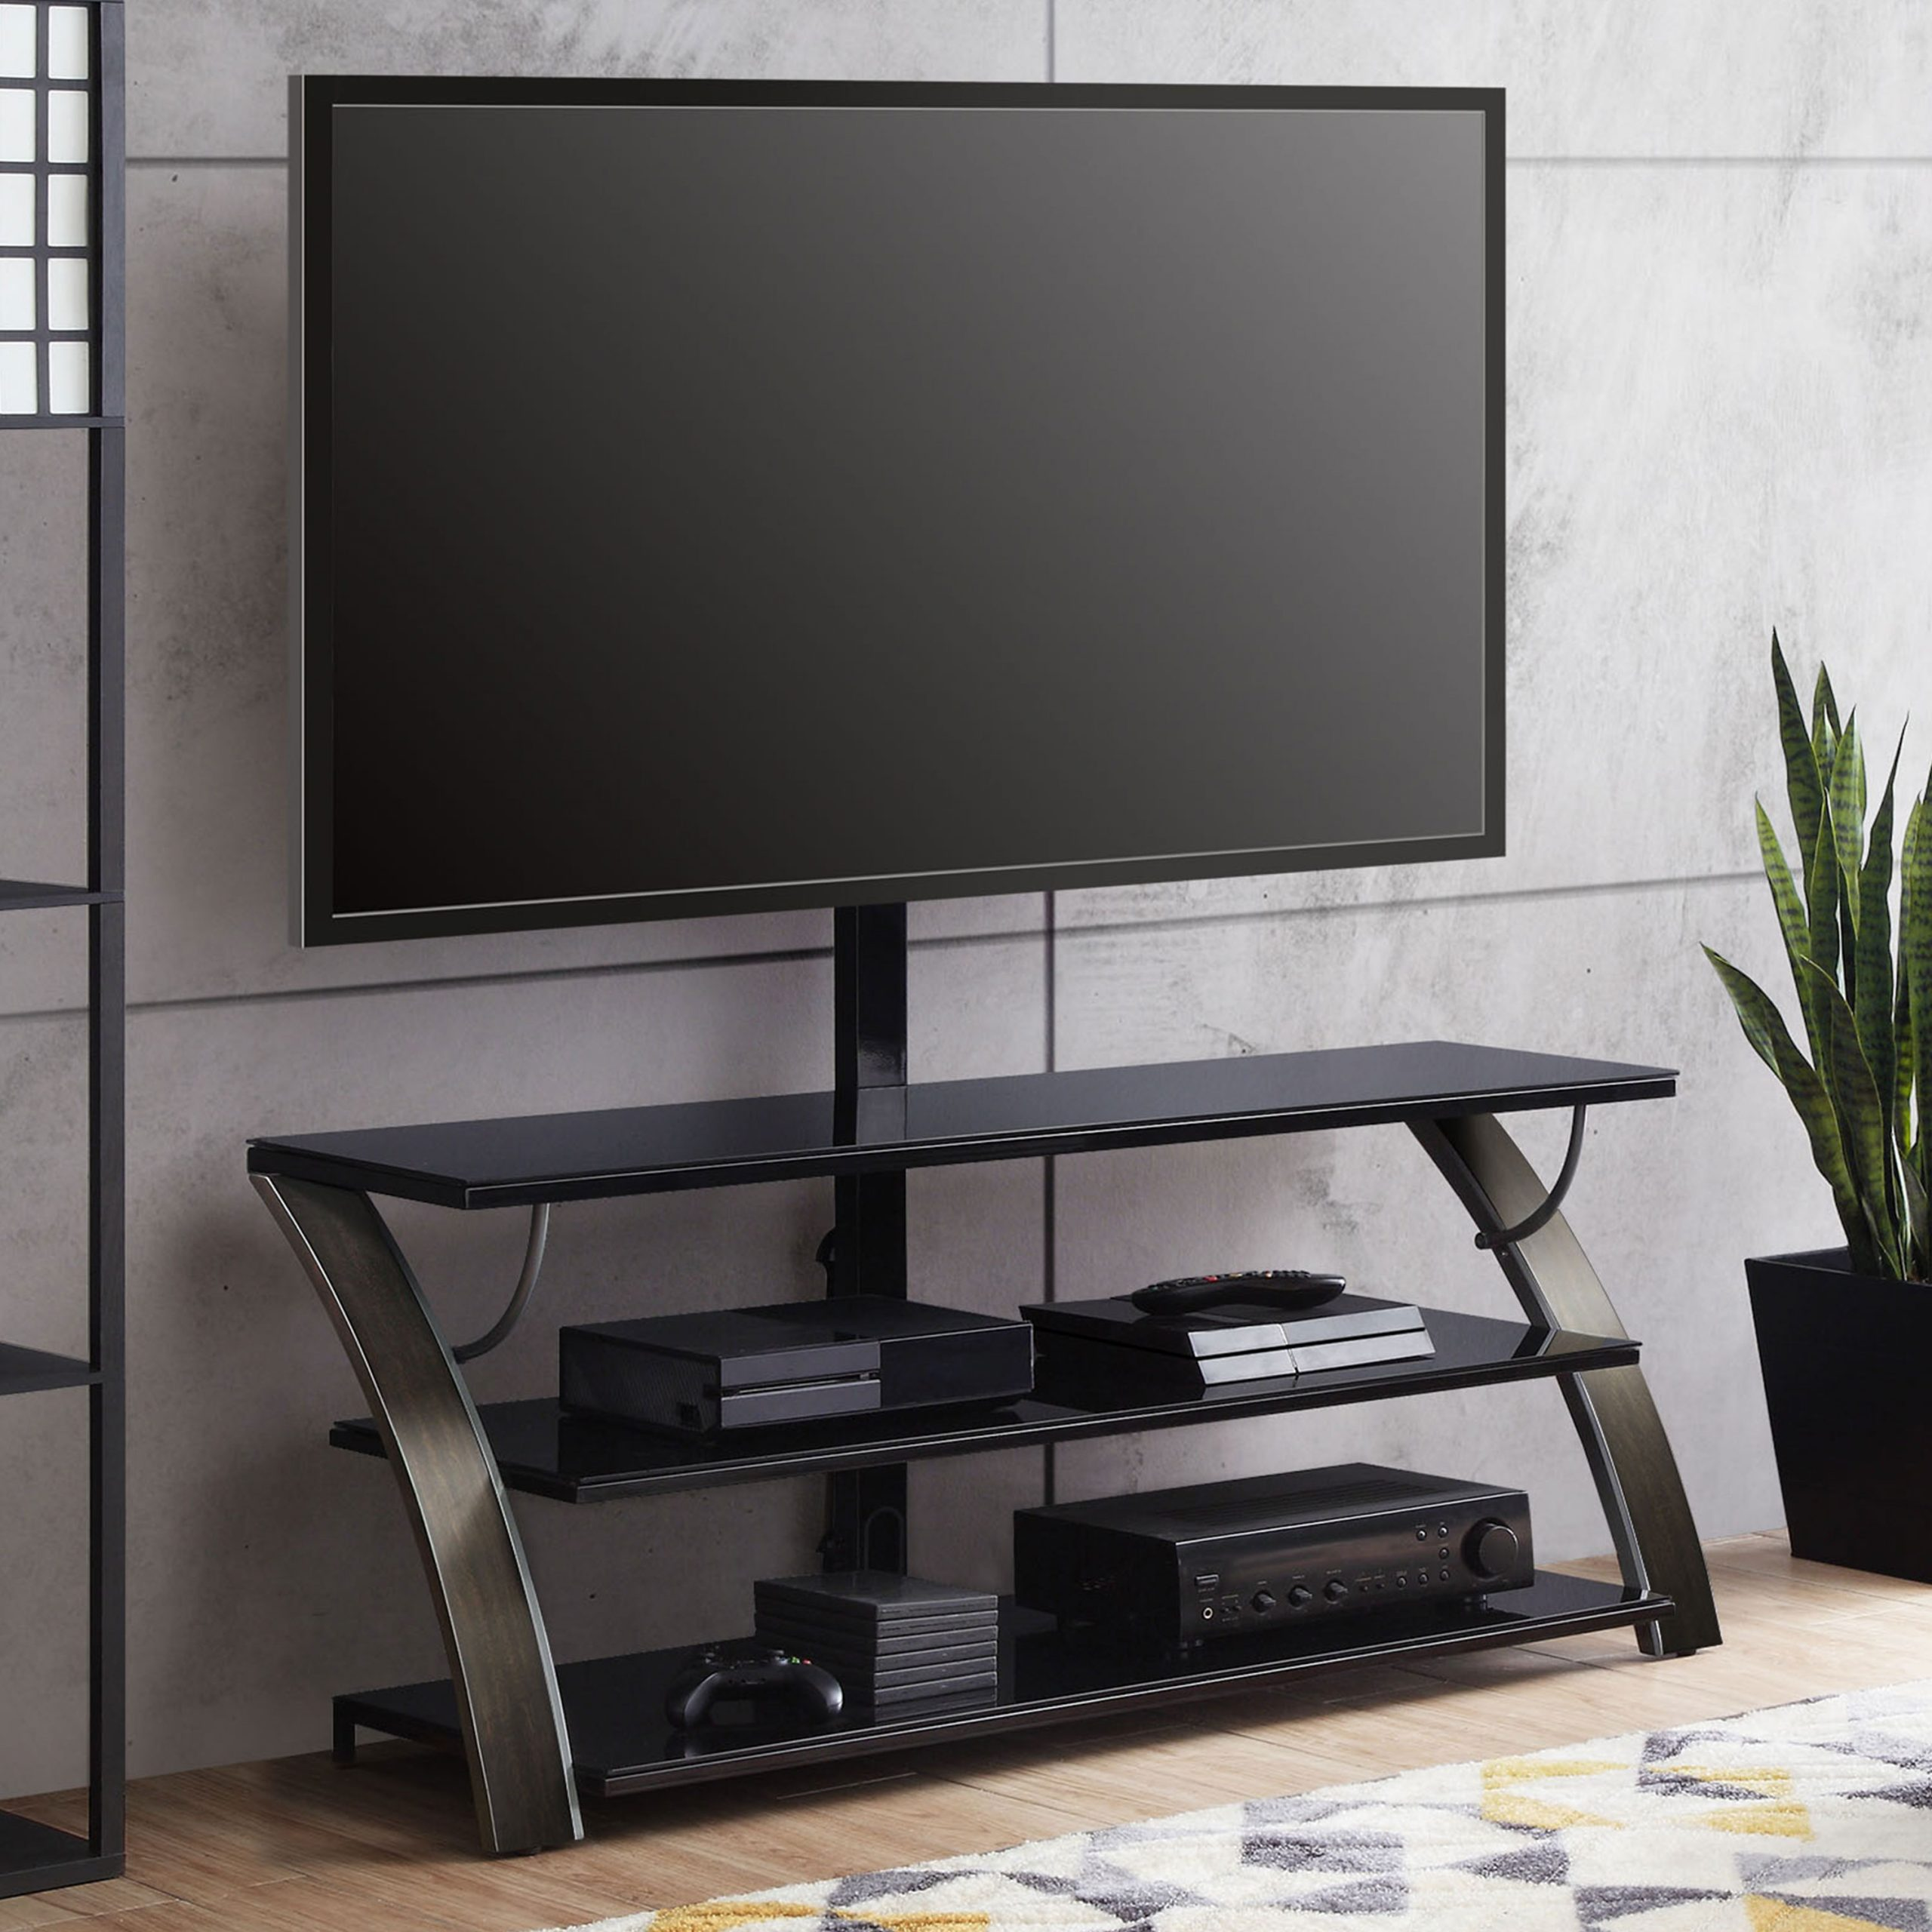 Whalen Payton 3 In 1 Flat Panel Tv Stand For Tvs Up To 65 In Easel Tv Stands For Flat Screens (View 4 of 15)